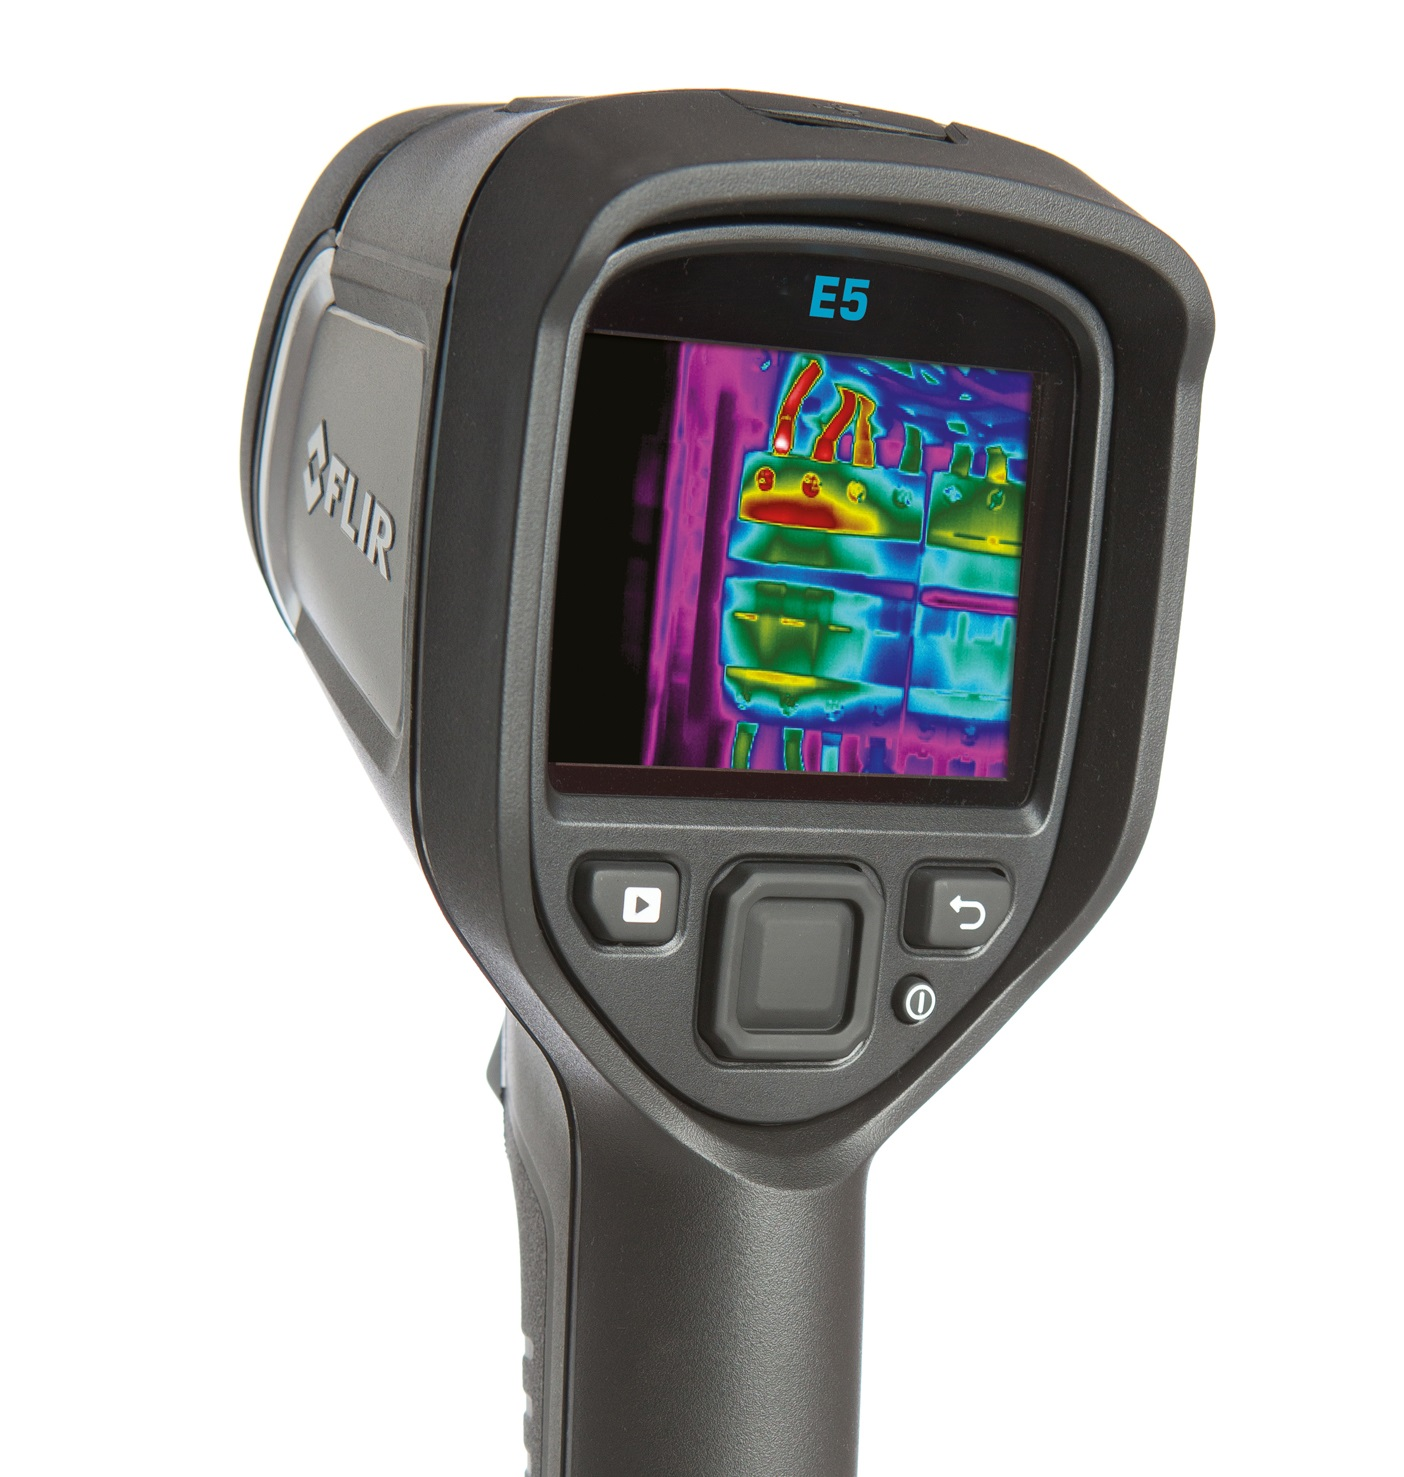 Flir Offers Price Deals On Thermal Imaging Cameras The